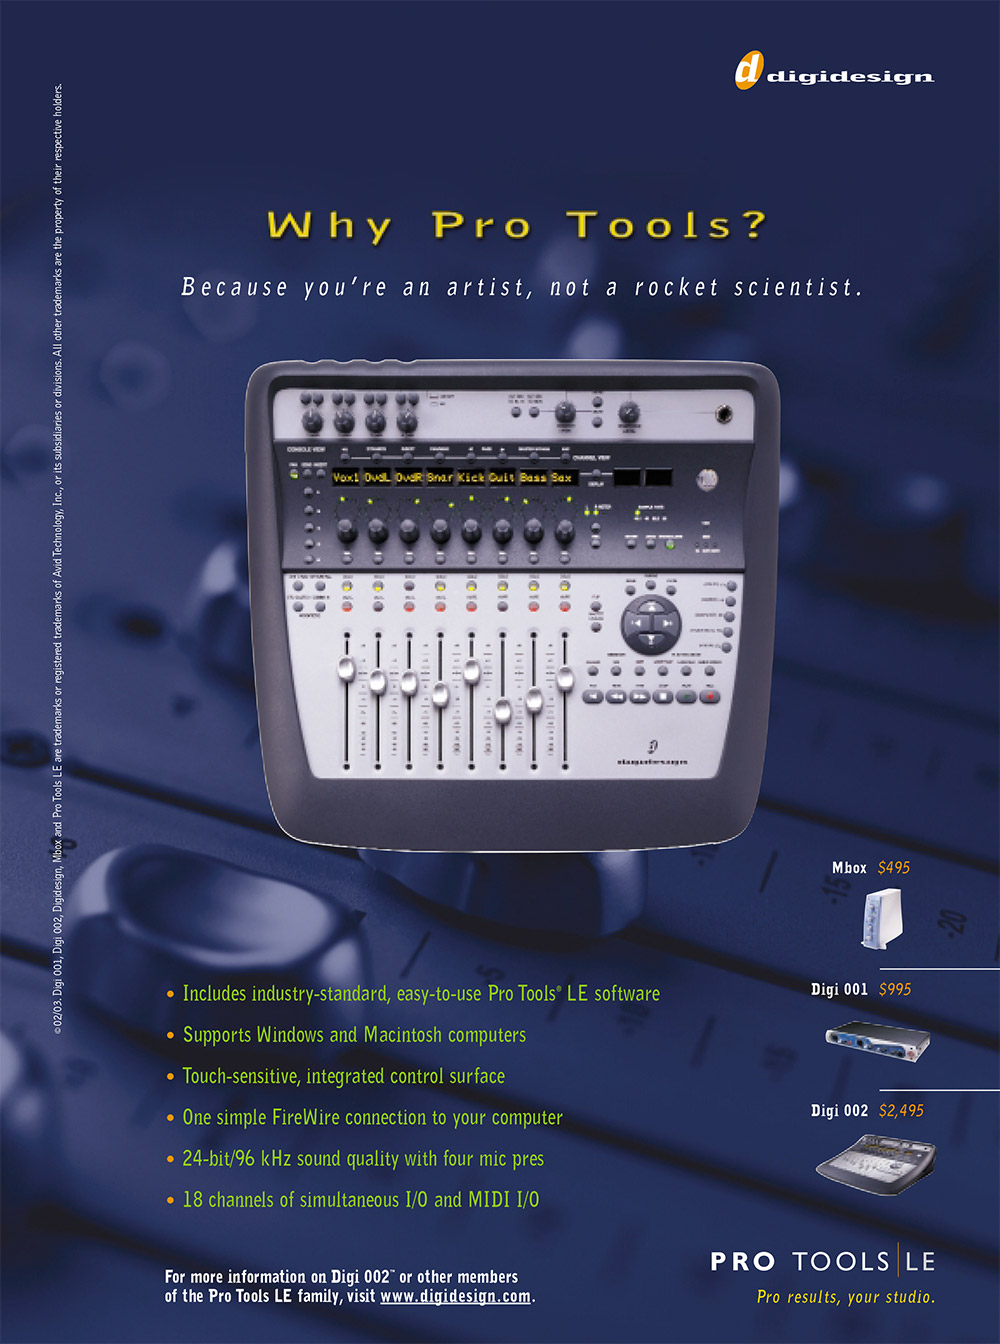 Boe Gatiss - 'Why Pro Tools?' Pro Tools LE ad for Avid / Digidesign